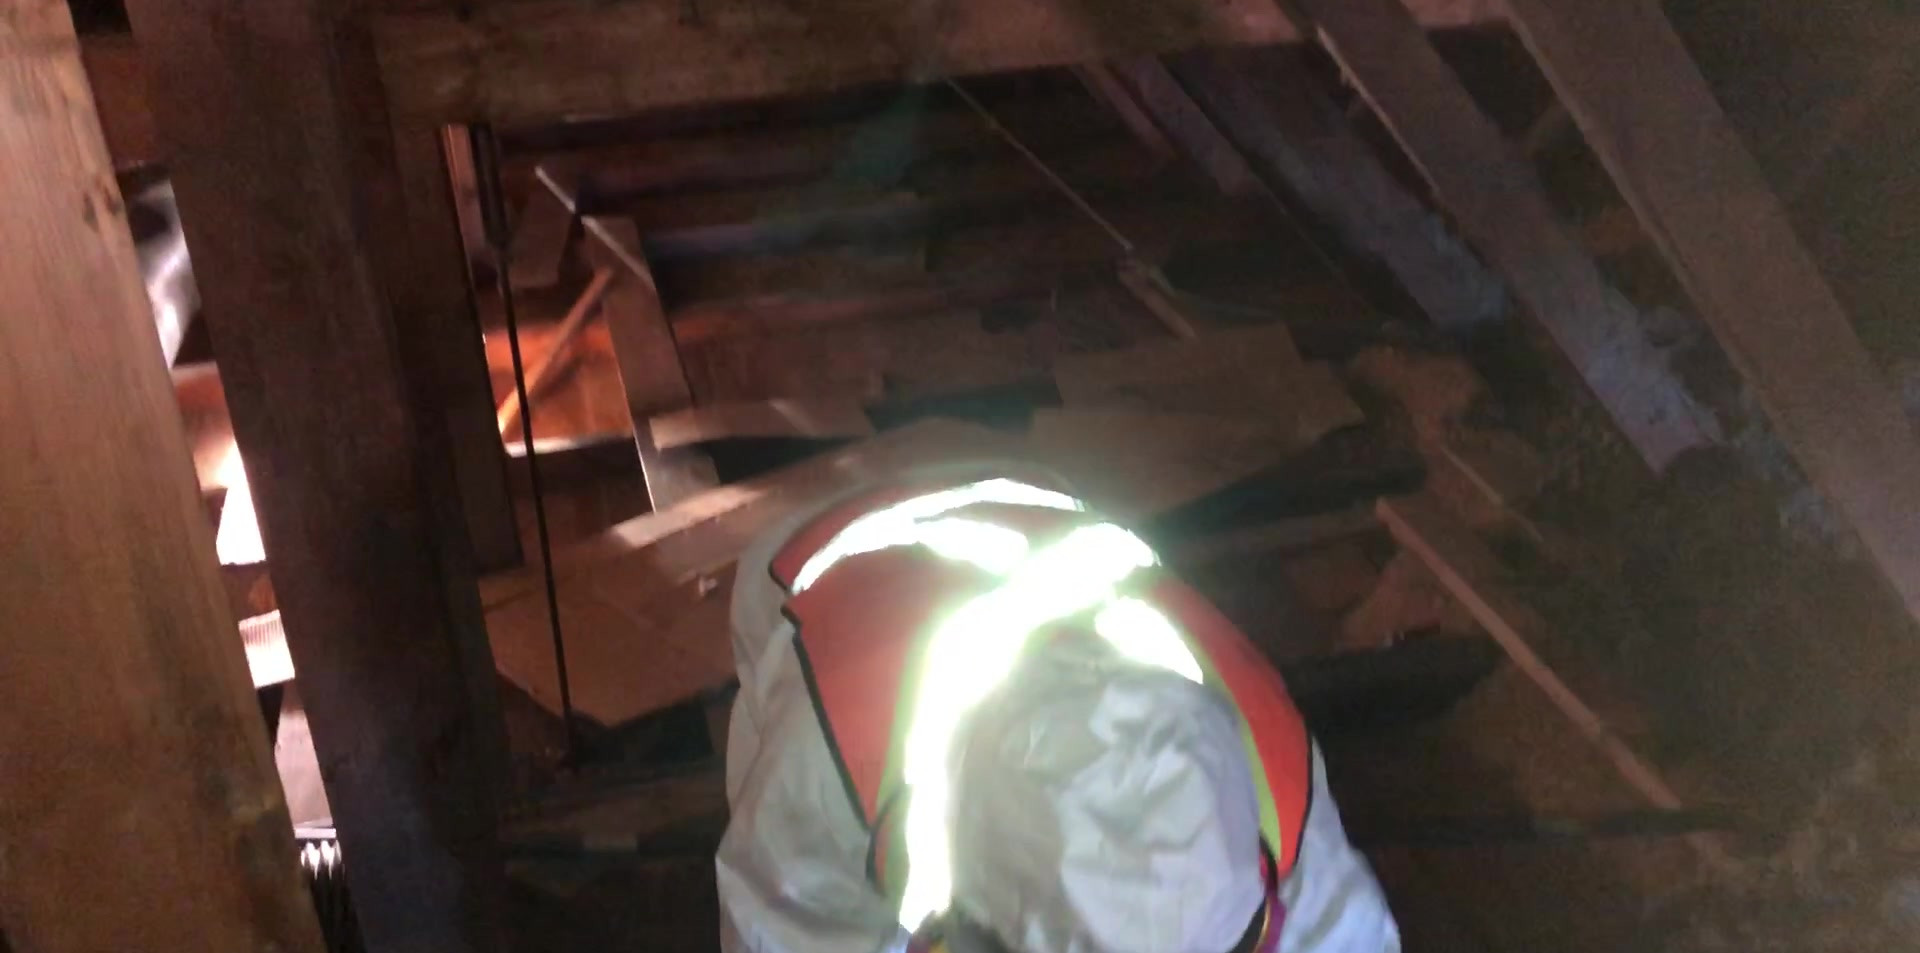 Removal of woodchips and rock wool from an old attic space.